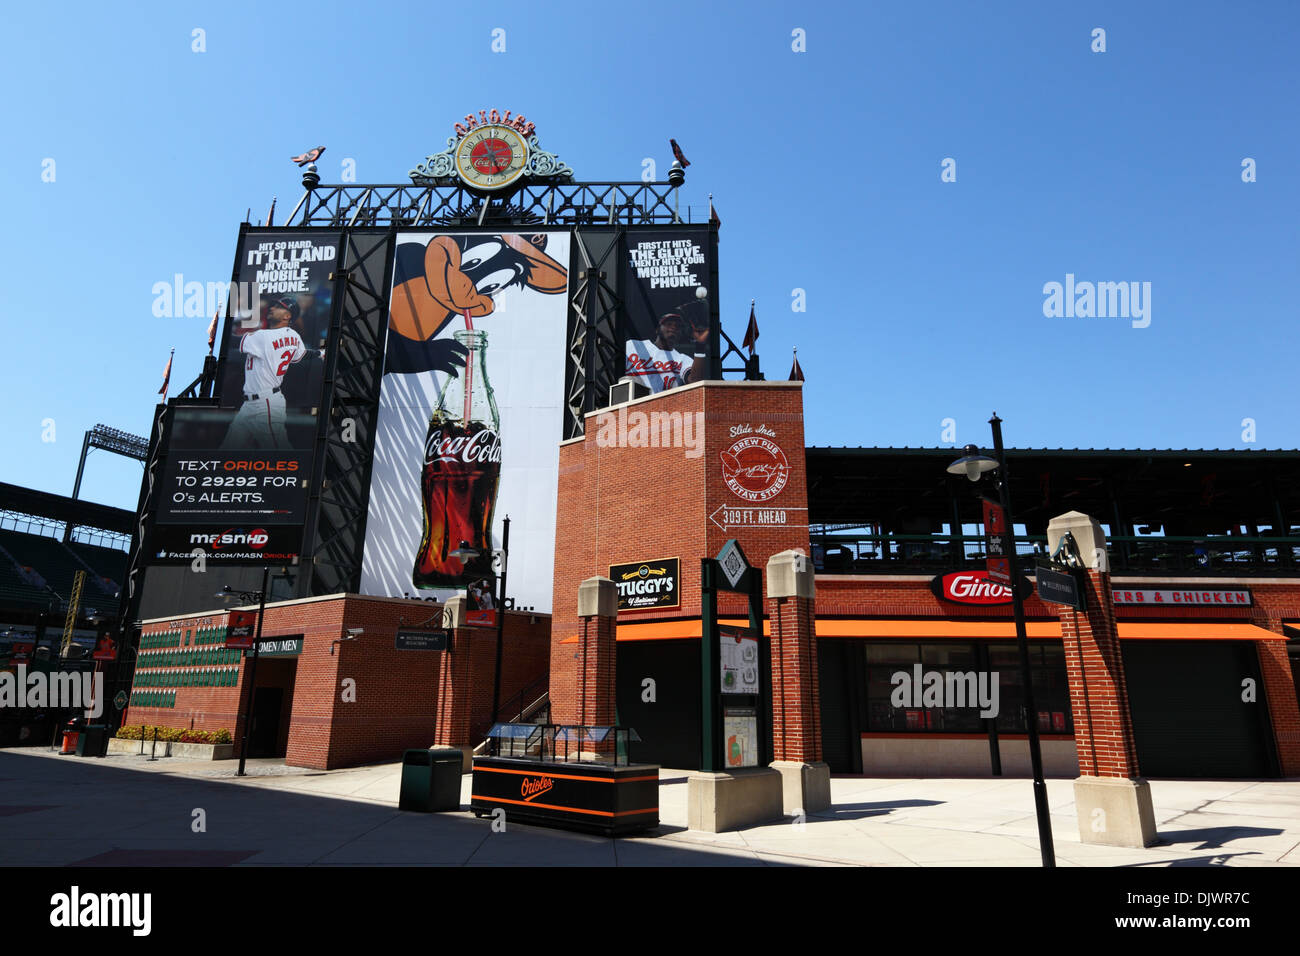 Oriole Park Home Of Baltimore Orioles Baseball Team Camden Yards Sports Complex Maryland USA